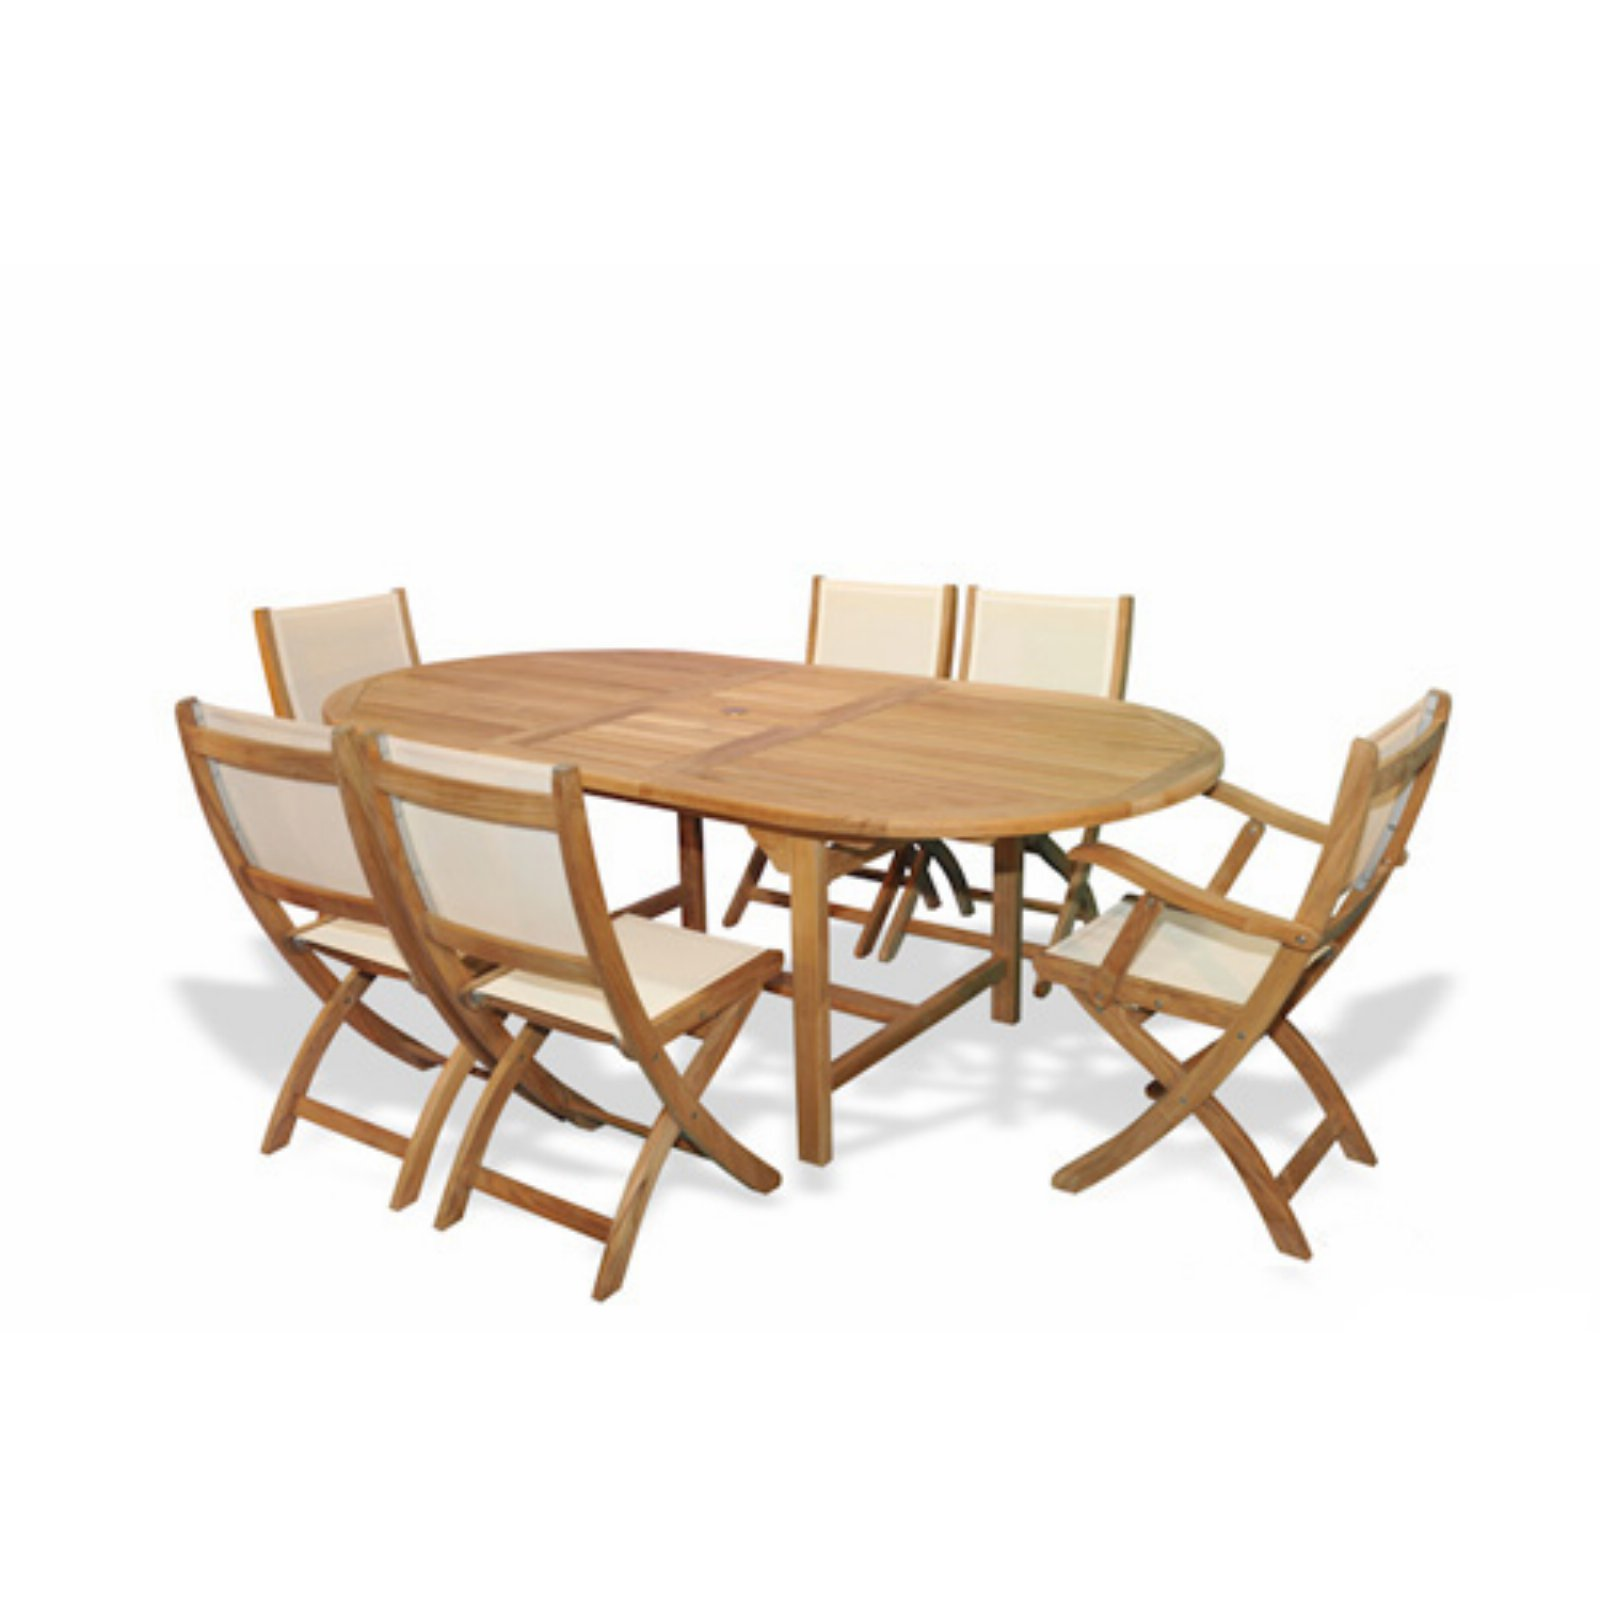 Regal Teak 7 Piece Teak Patio Dining Room Set by